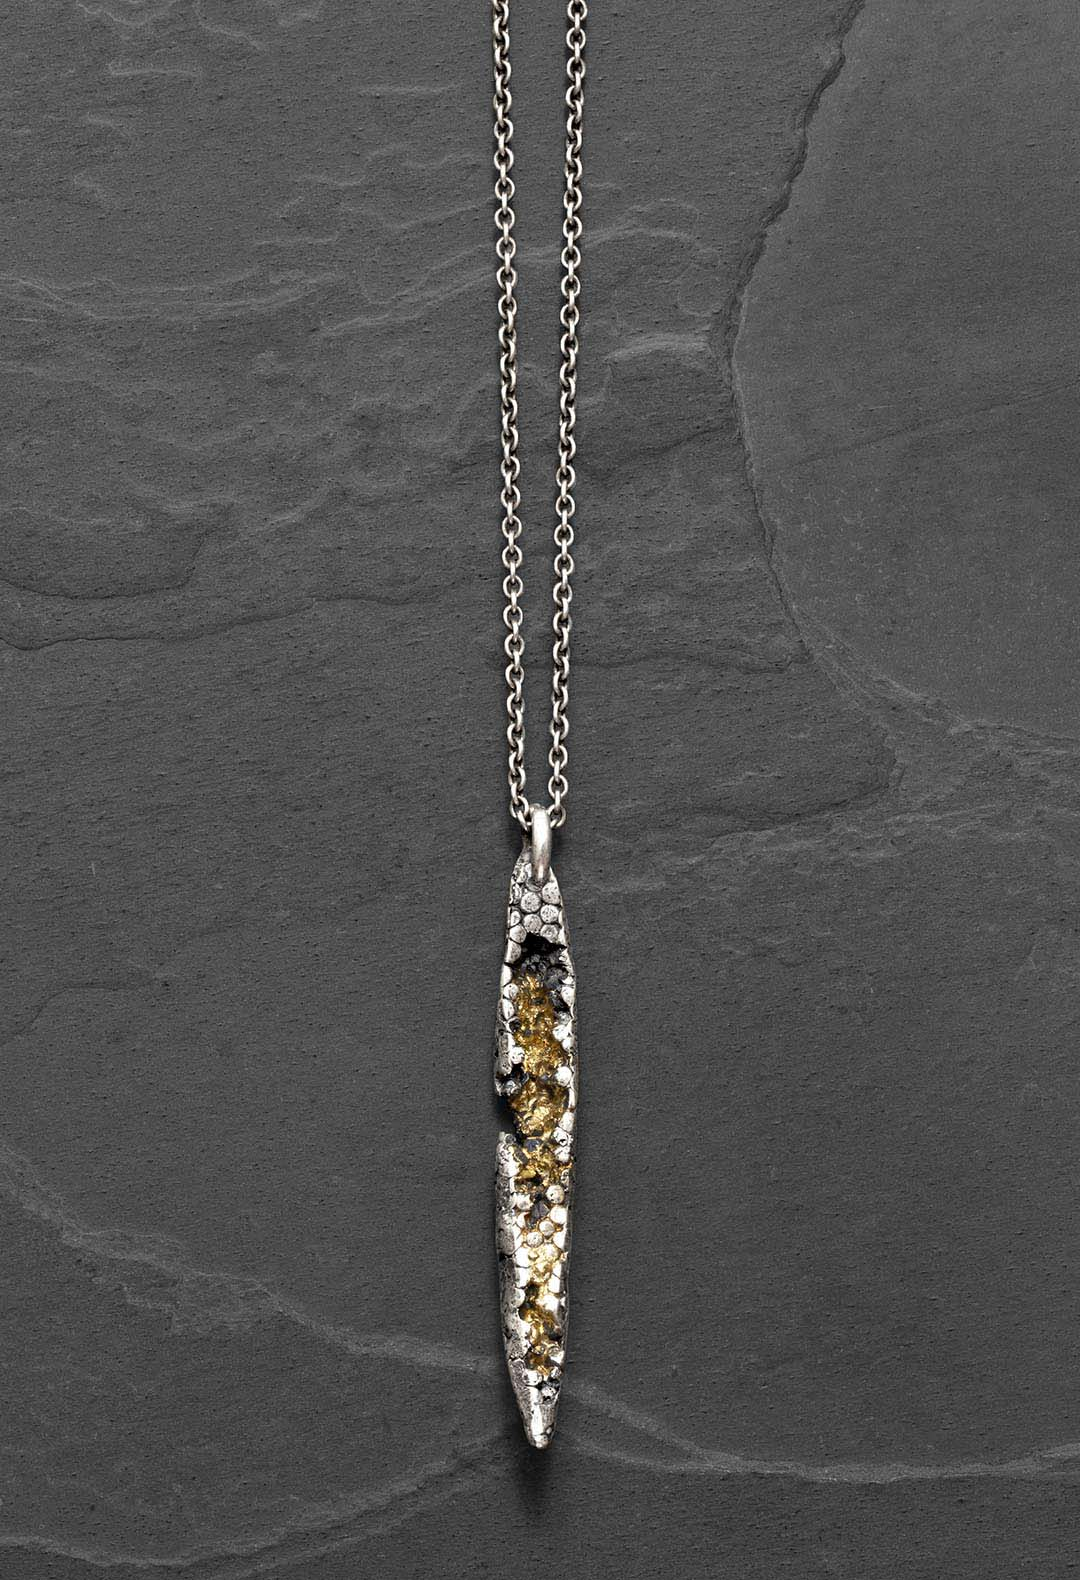 Gold mine necklace